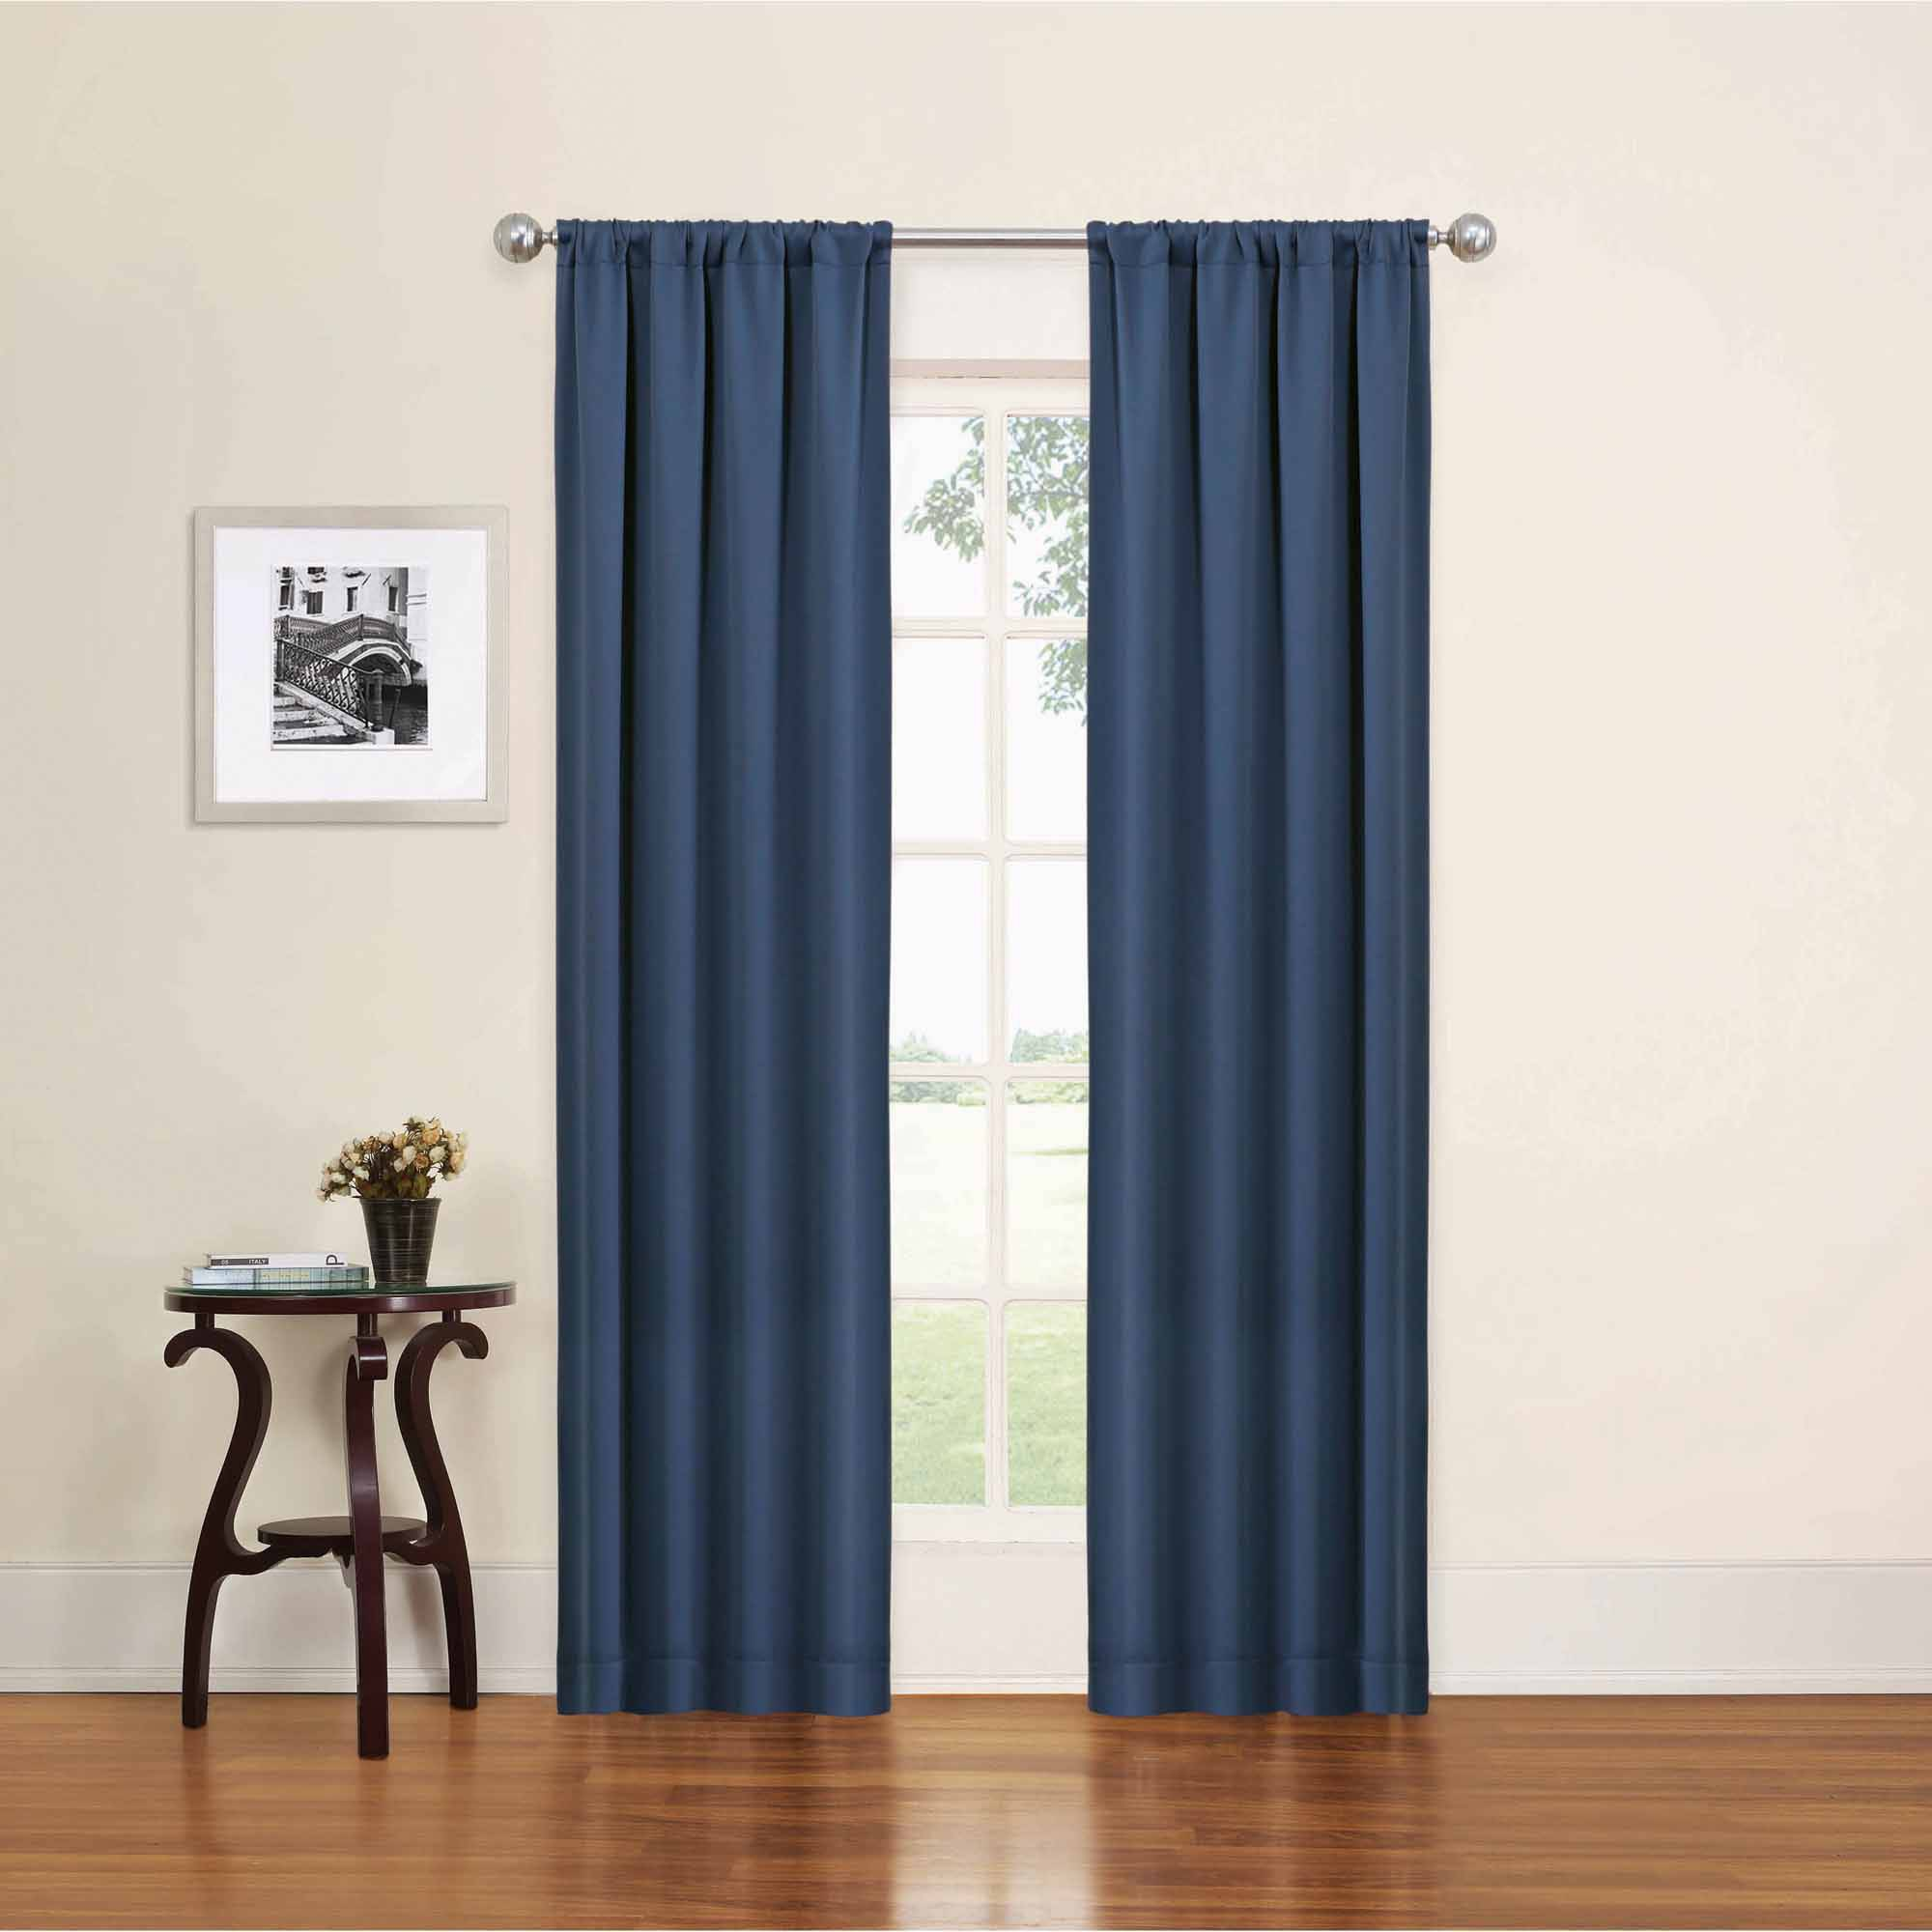 window panels eclipse phoenix blackout window curtain panel pair - walmart.com COWQMBW